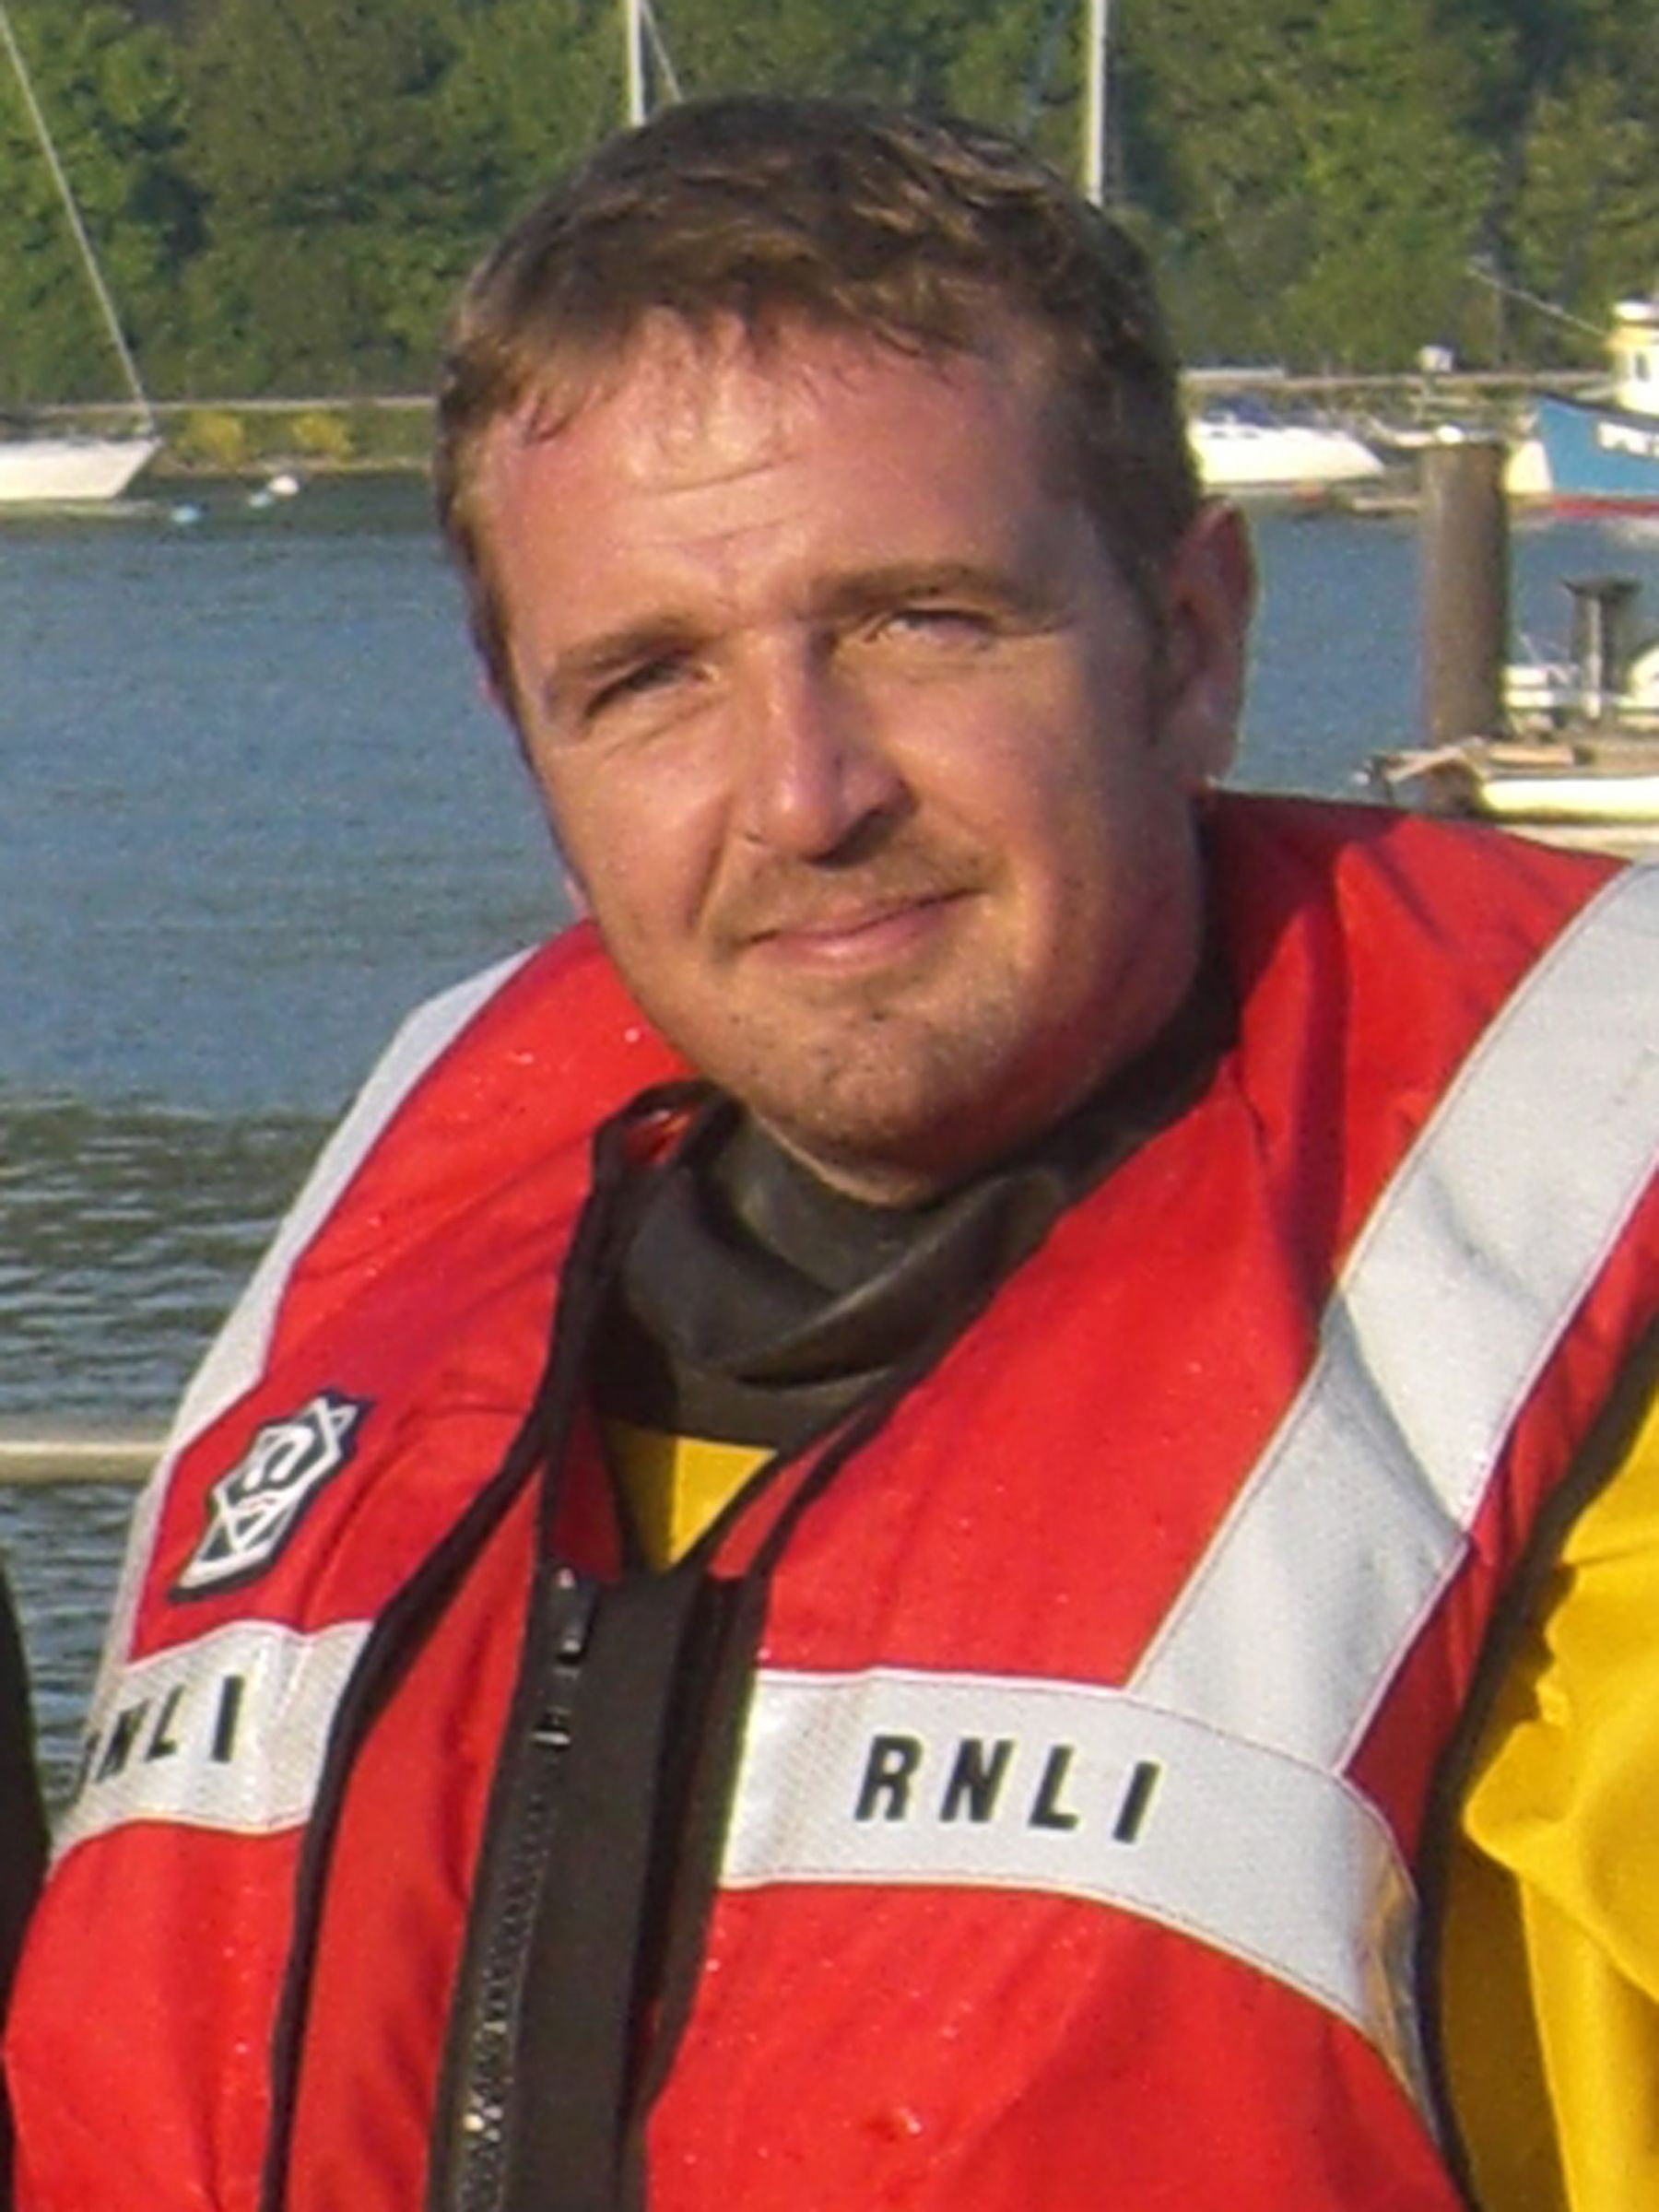 Squiff Howitt. Operations Team. RNLI Dart